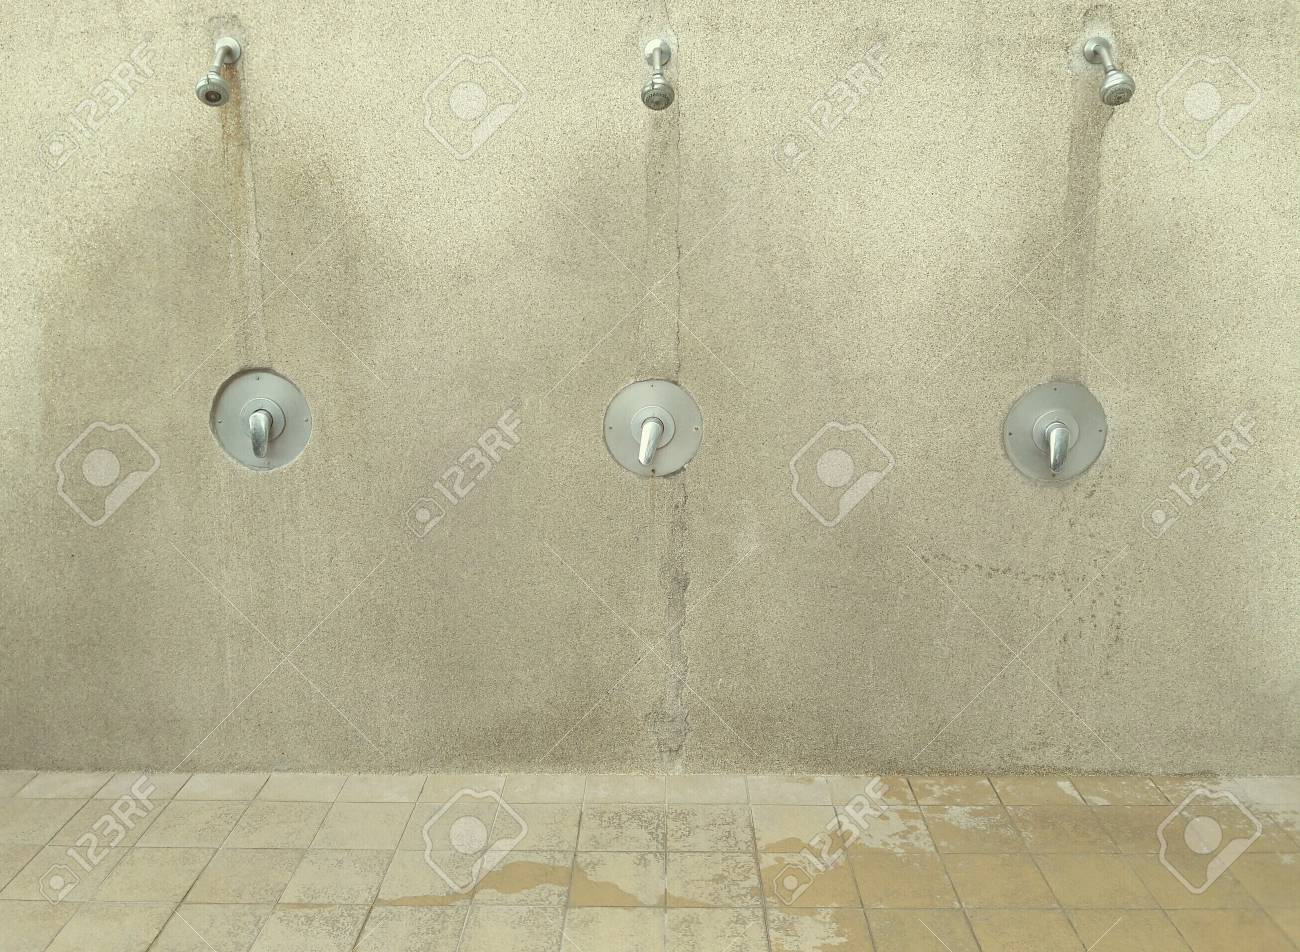 Swimming pool shower area